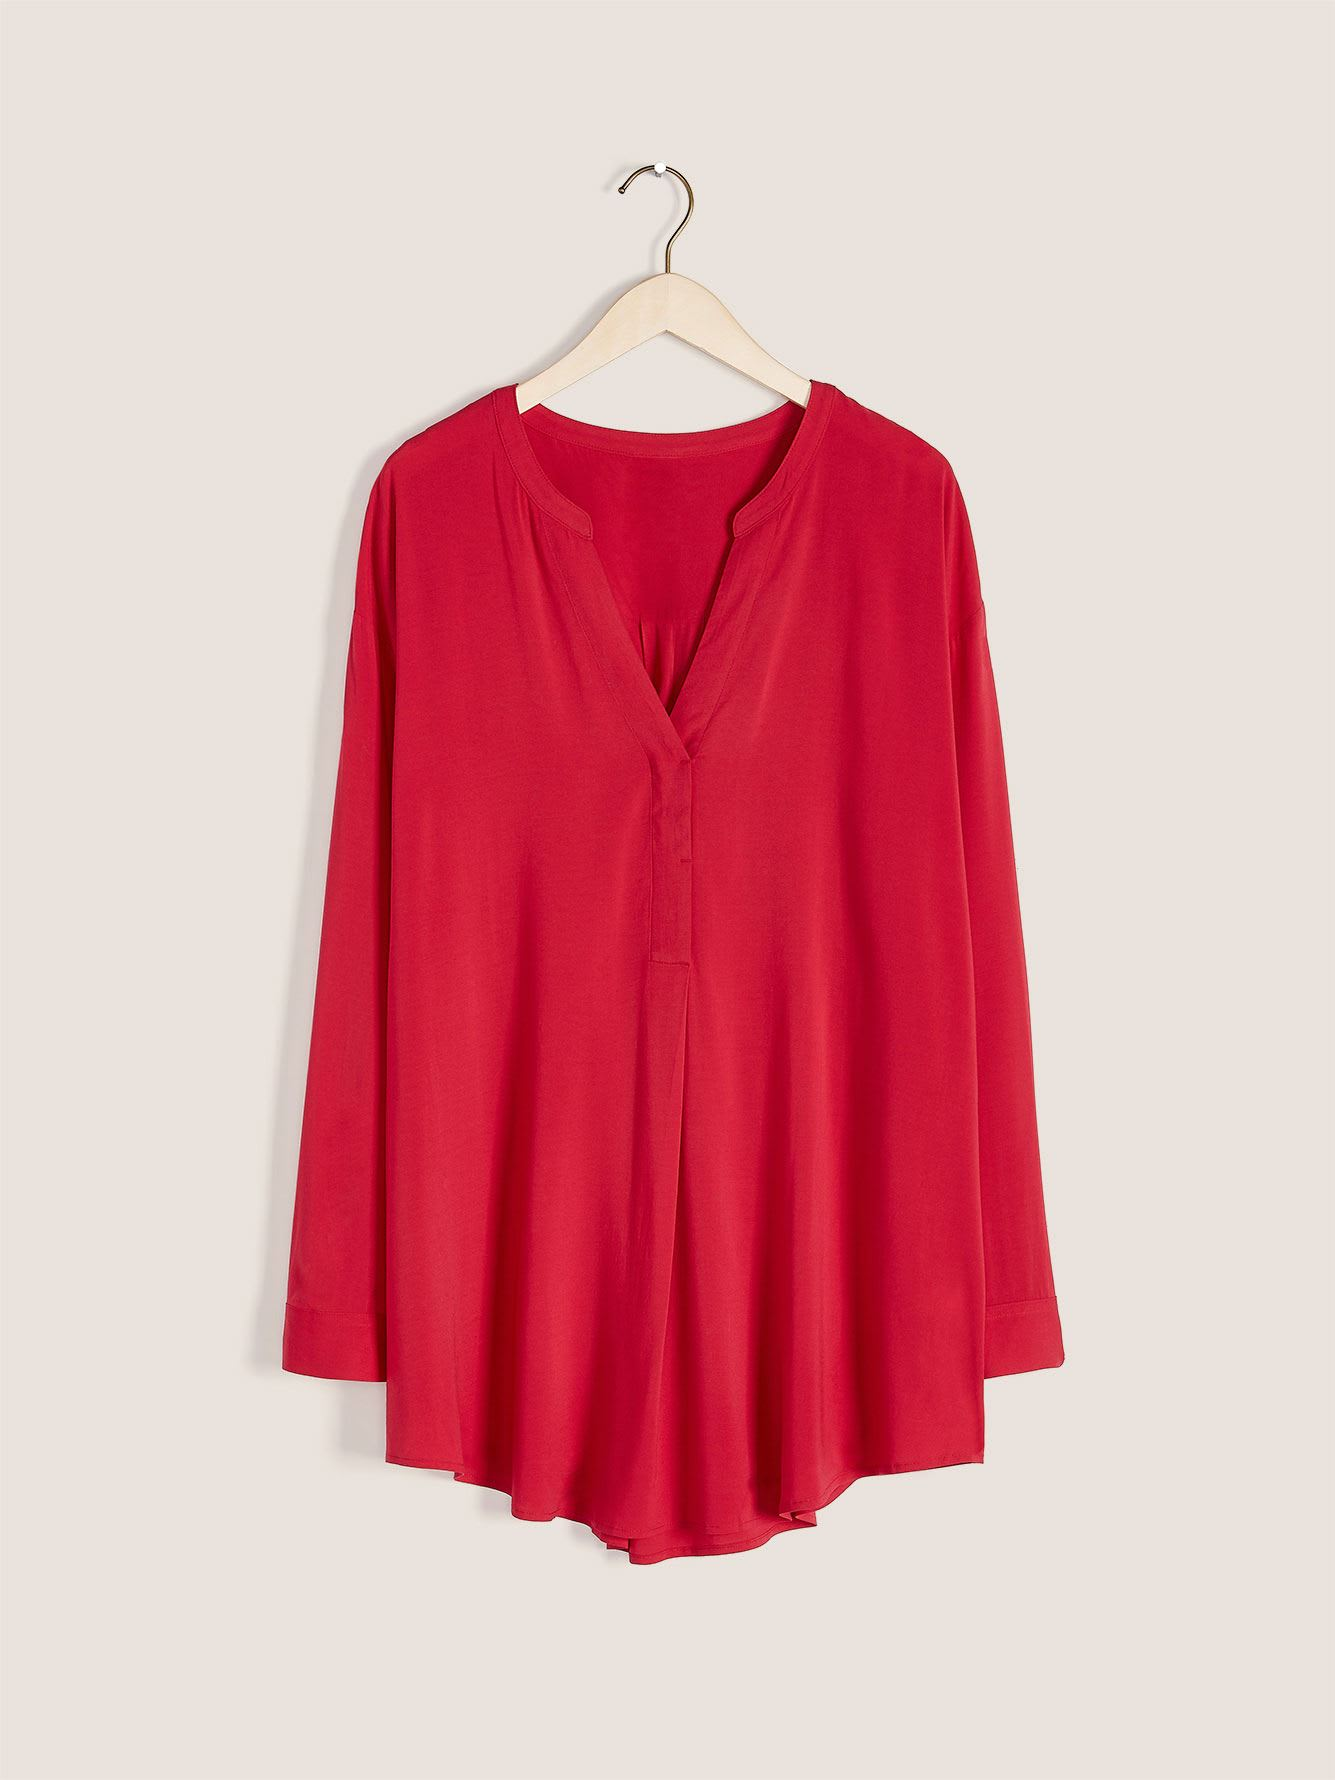 Mandarin Collar Tunic Blouse - In Every Story